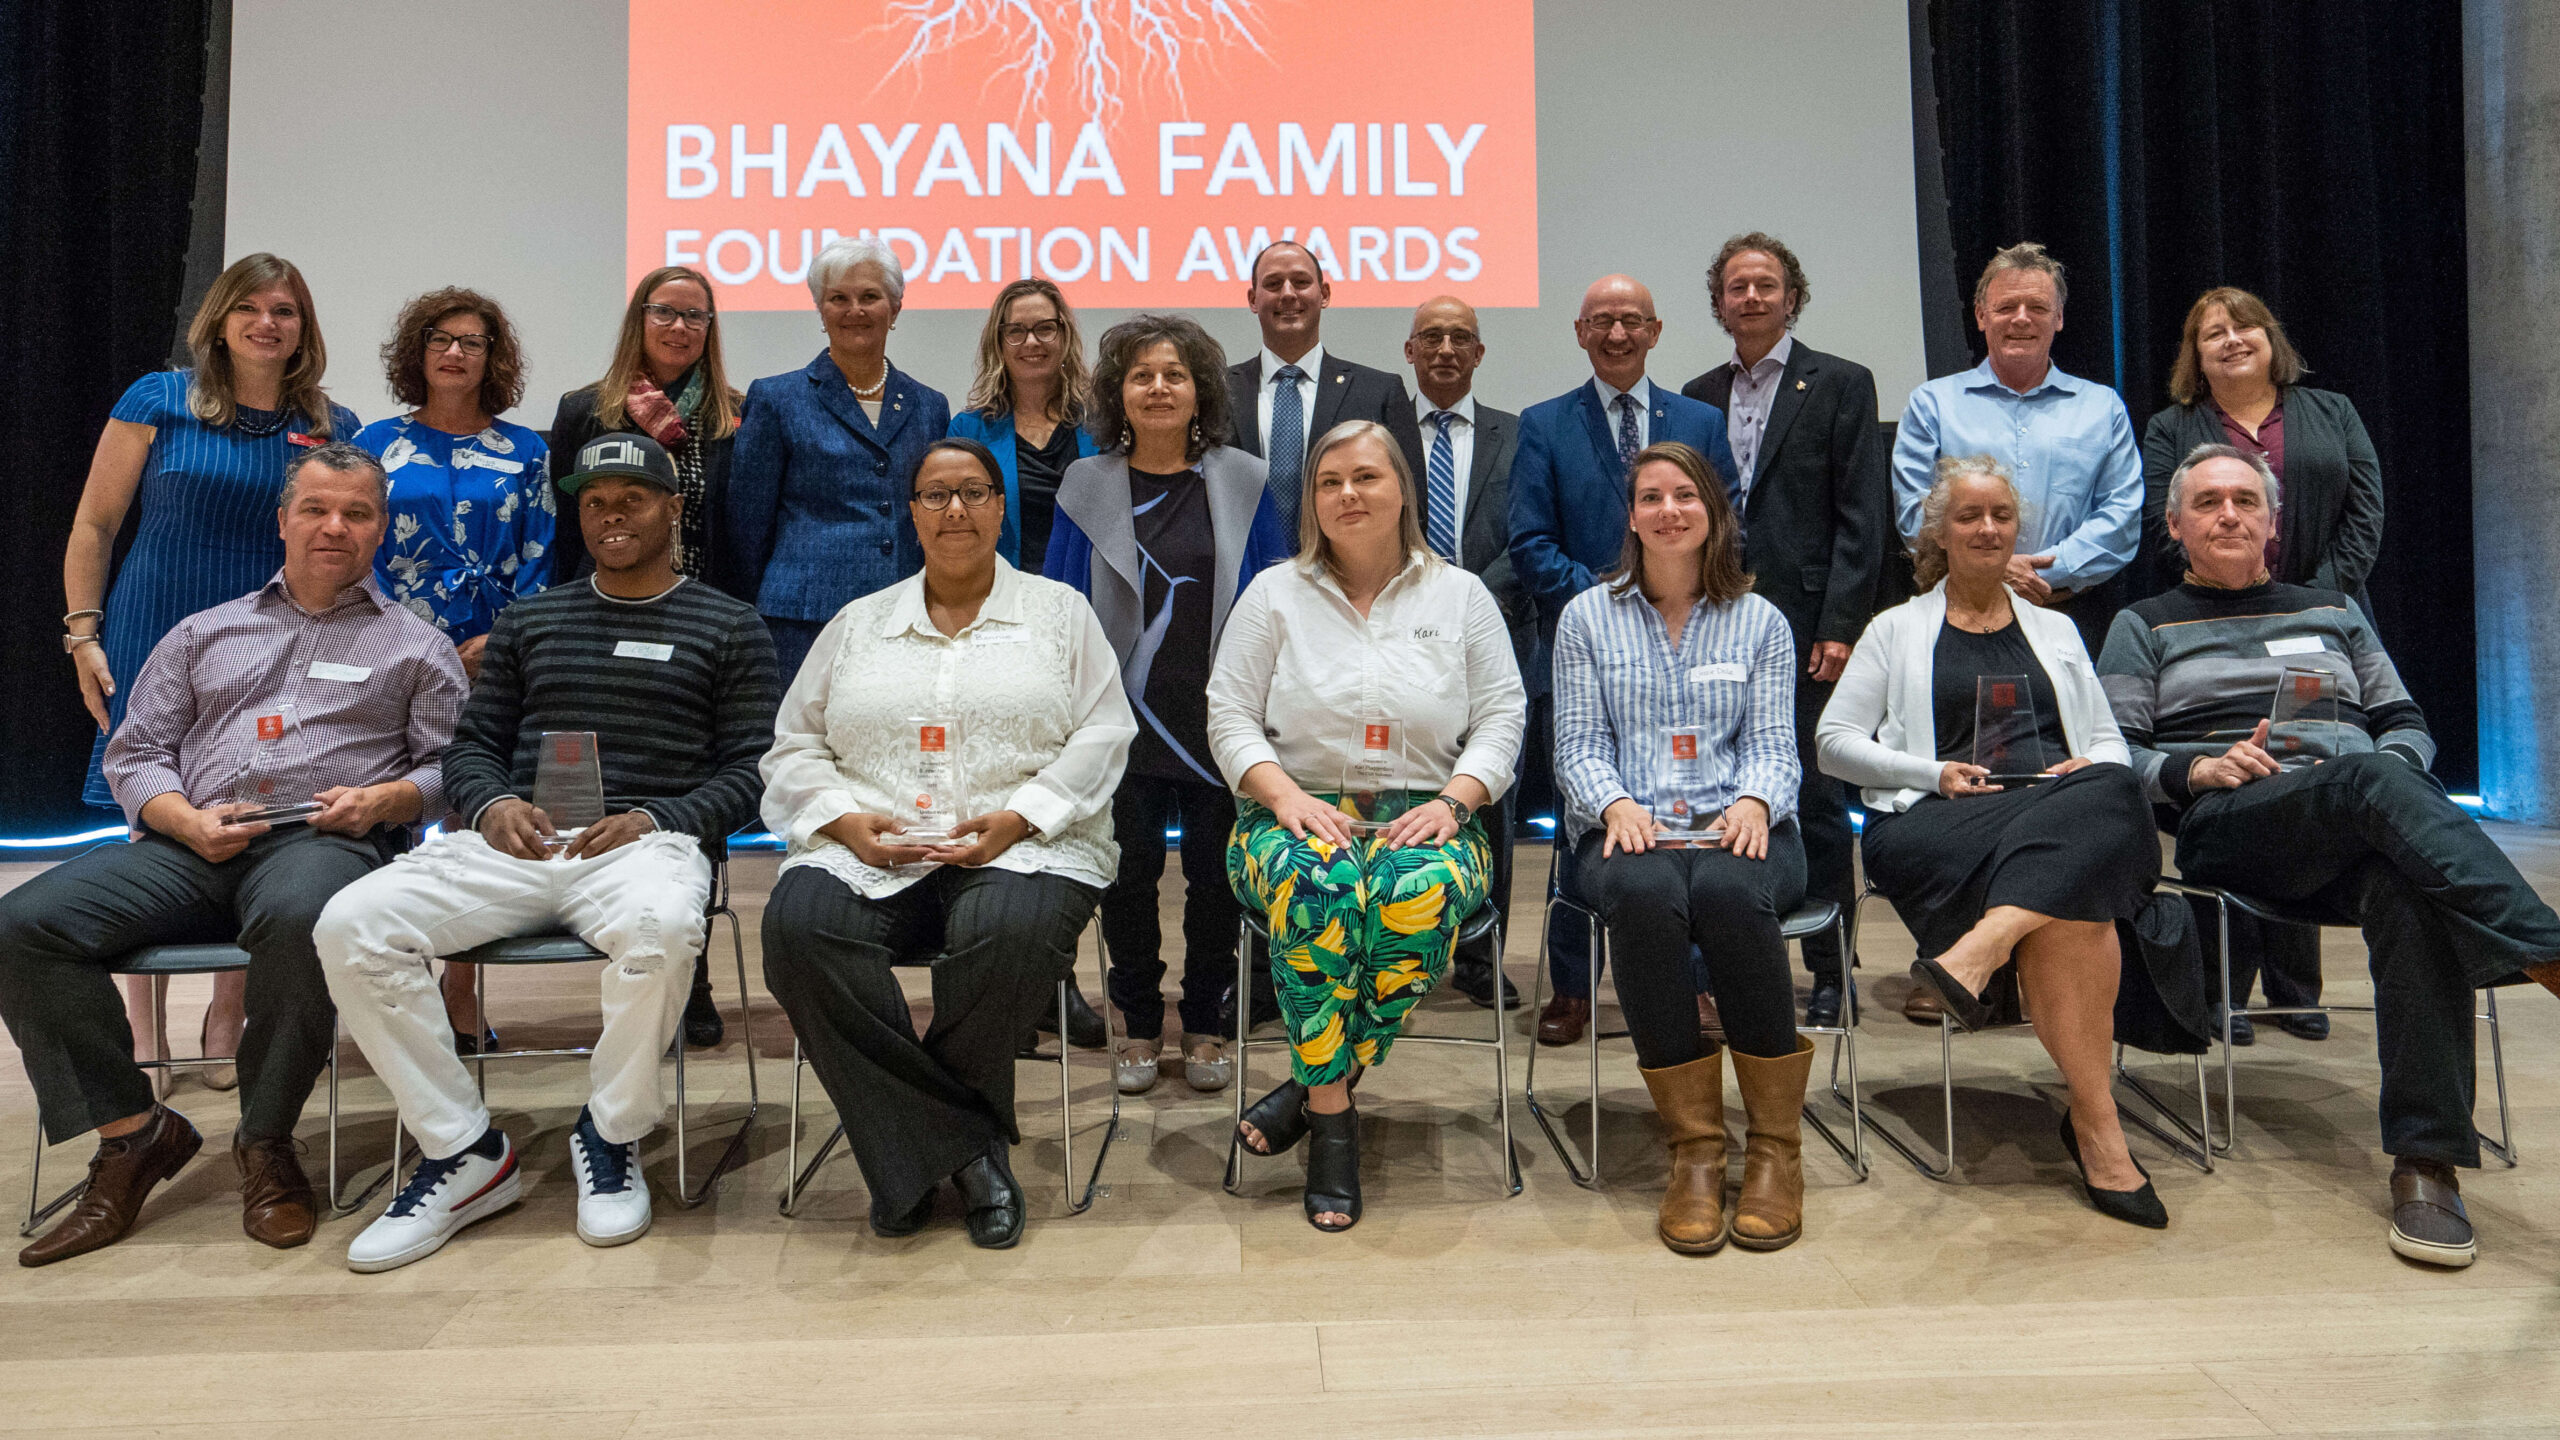 Group photo of the winners of the 2019 Bhayana Family Foundation Awards and their organizations' executive directors